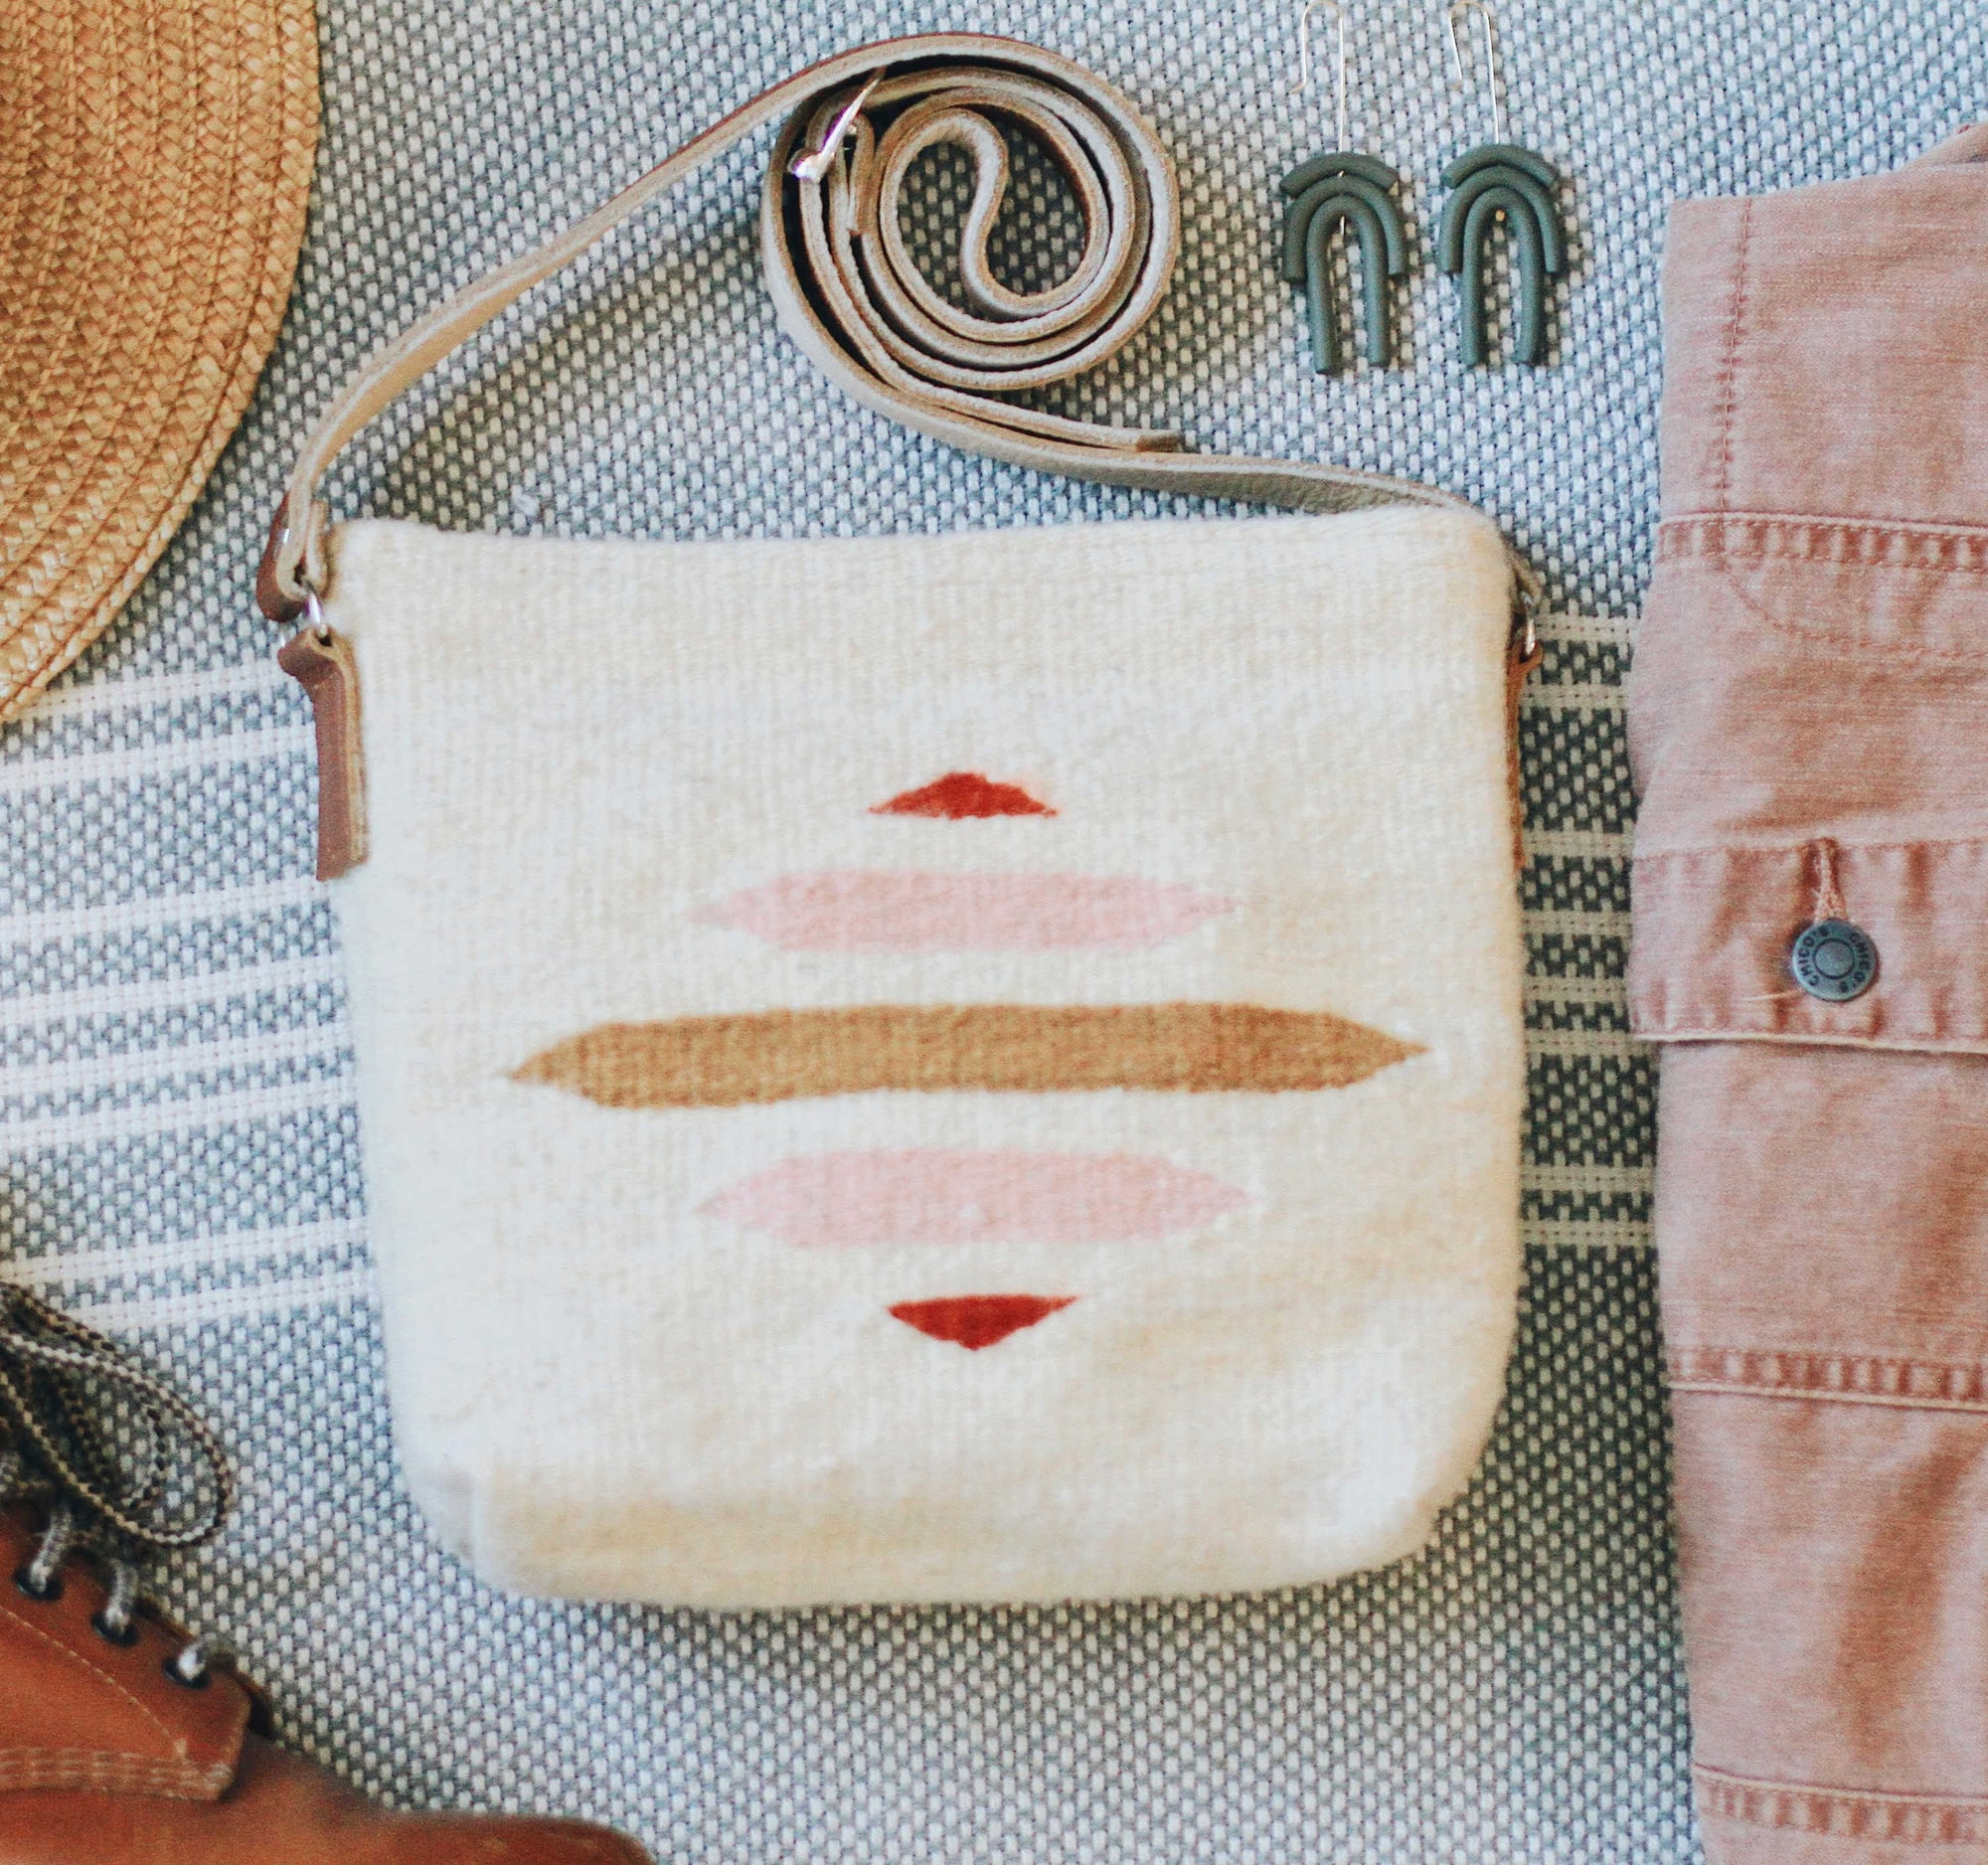 Handmade bags made in Mexico. Fair trade accessories. Handwoven with boho and modern accents.